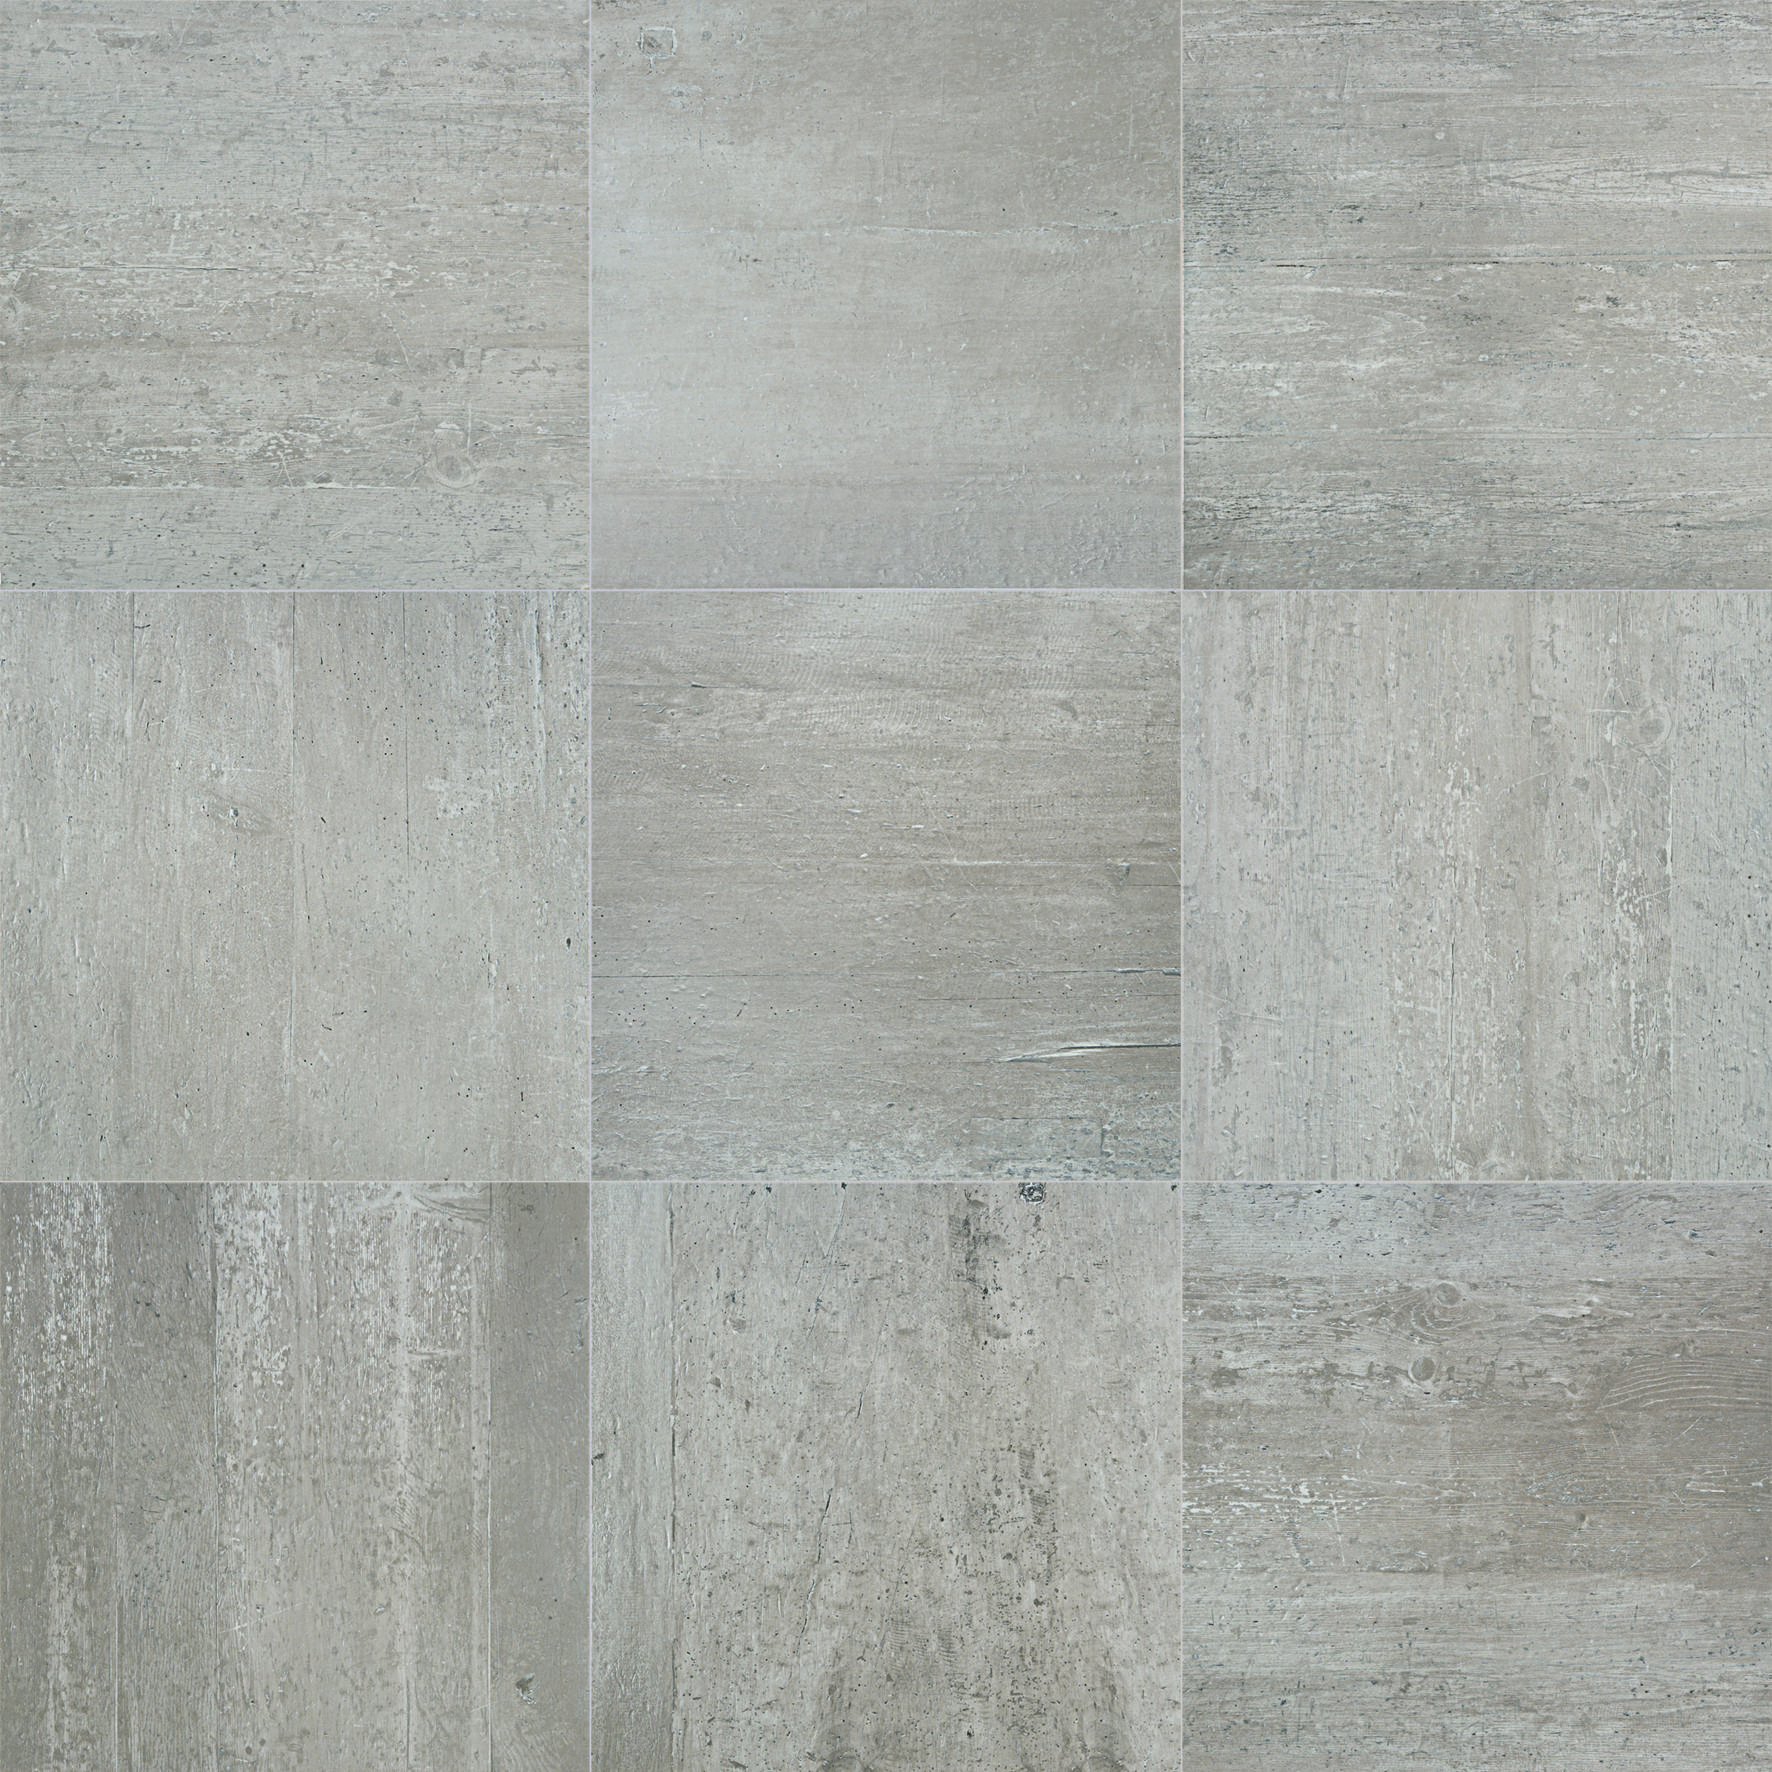 porcelain tiles from the Wood2 collection in DUST, by http